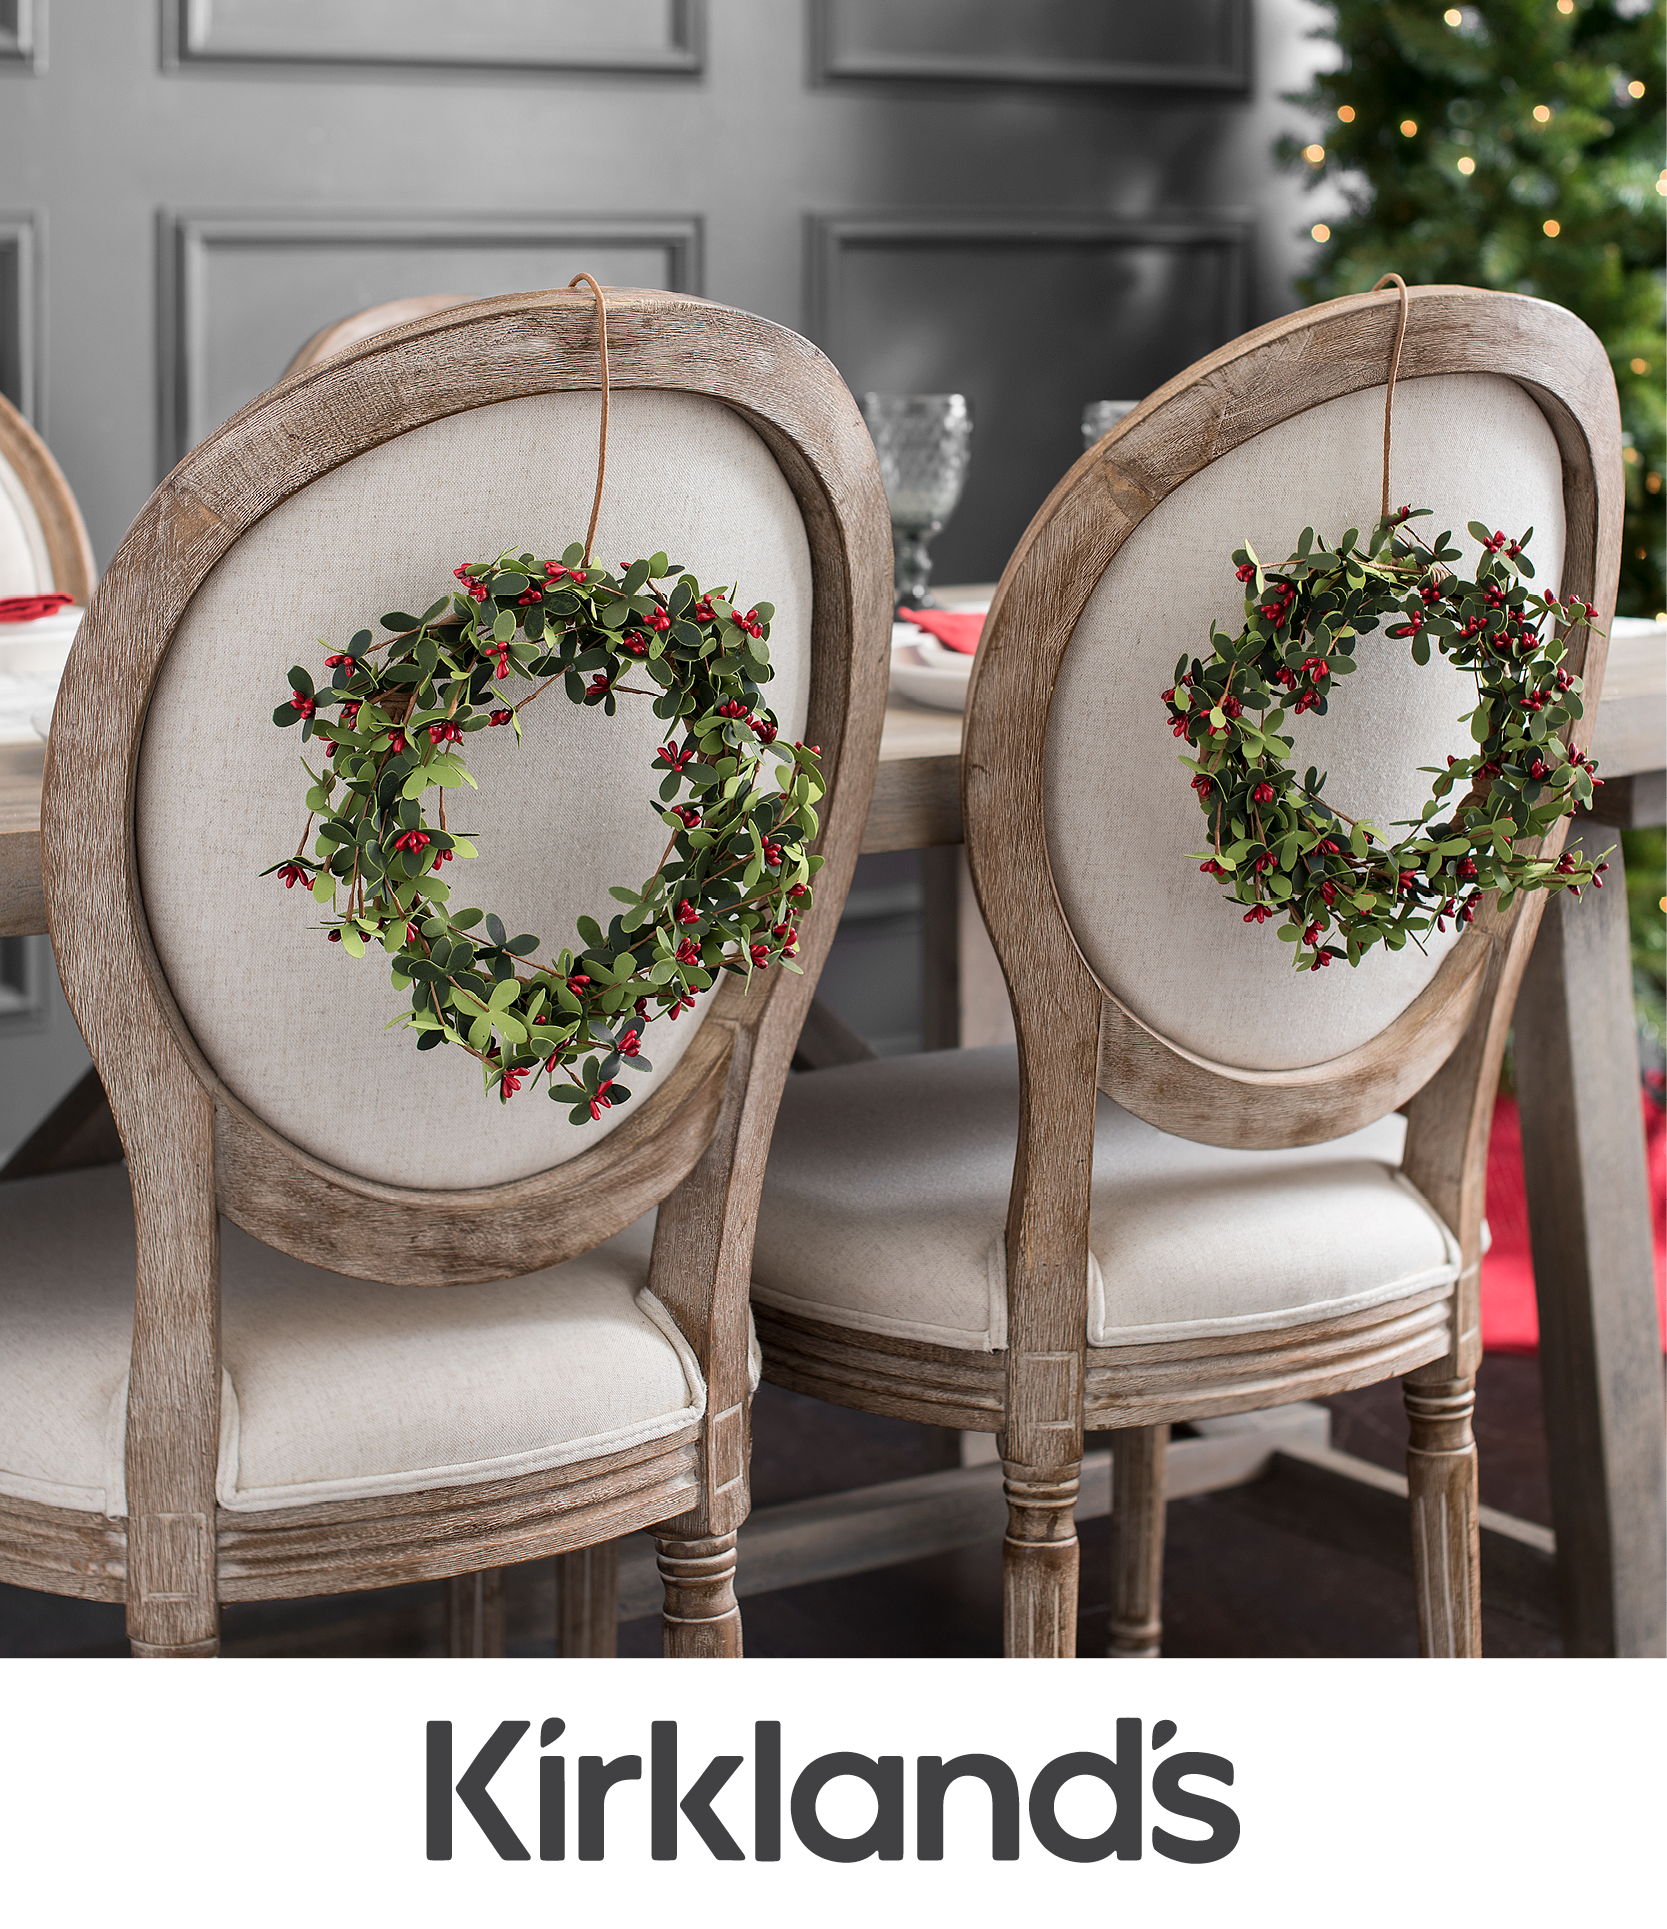 Decorate Your Dinning With These Lovely Christmas Chair: Add A Small Wreath To The Backs Of Your Dining Chairs For